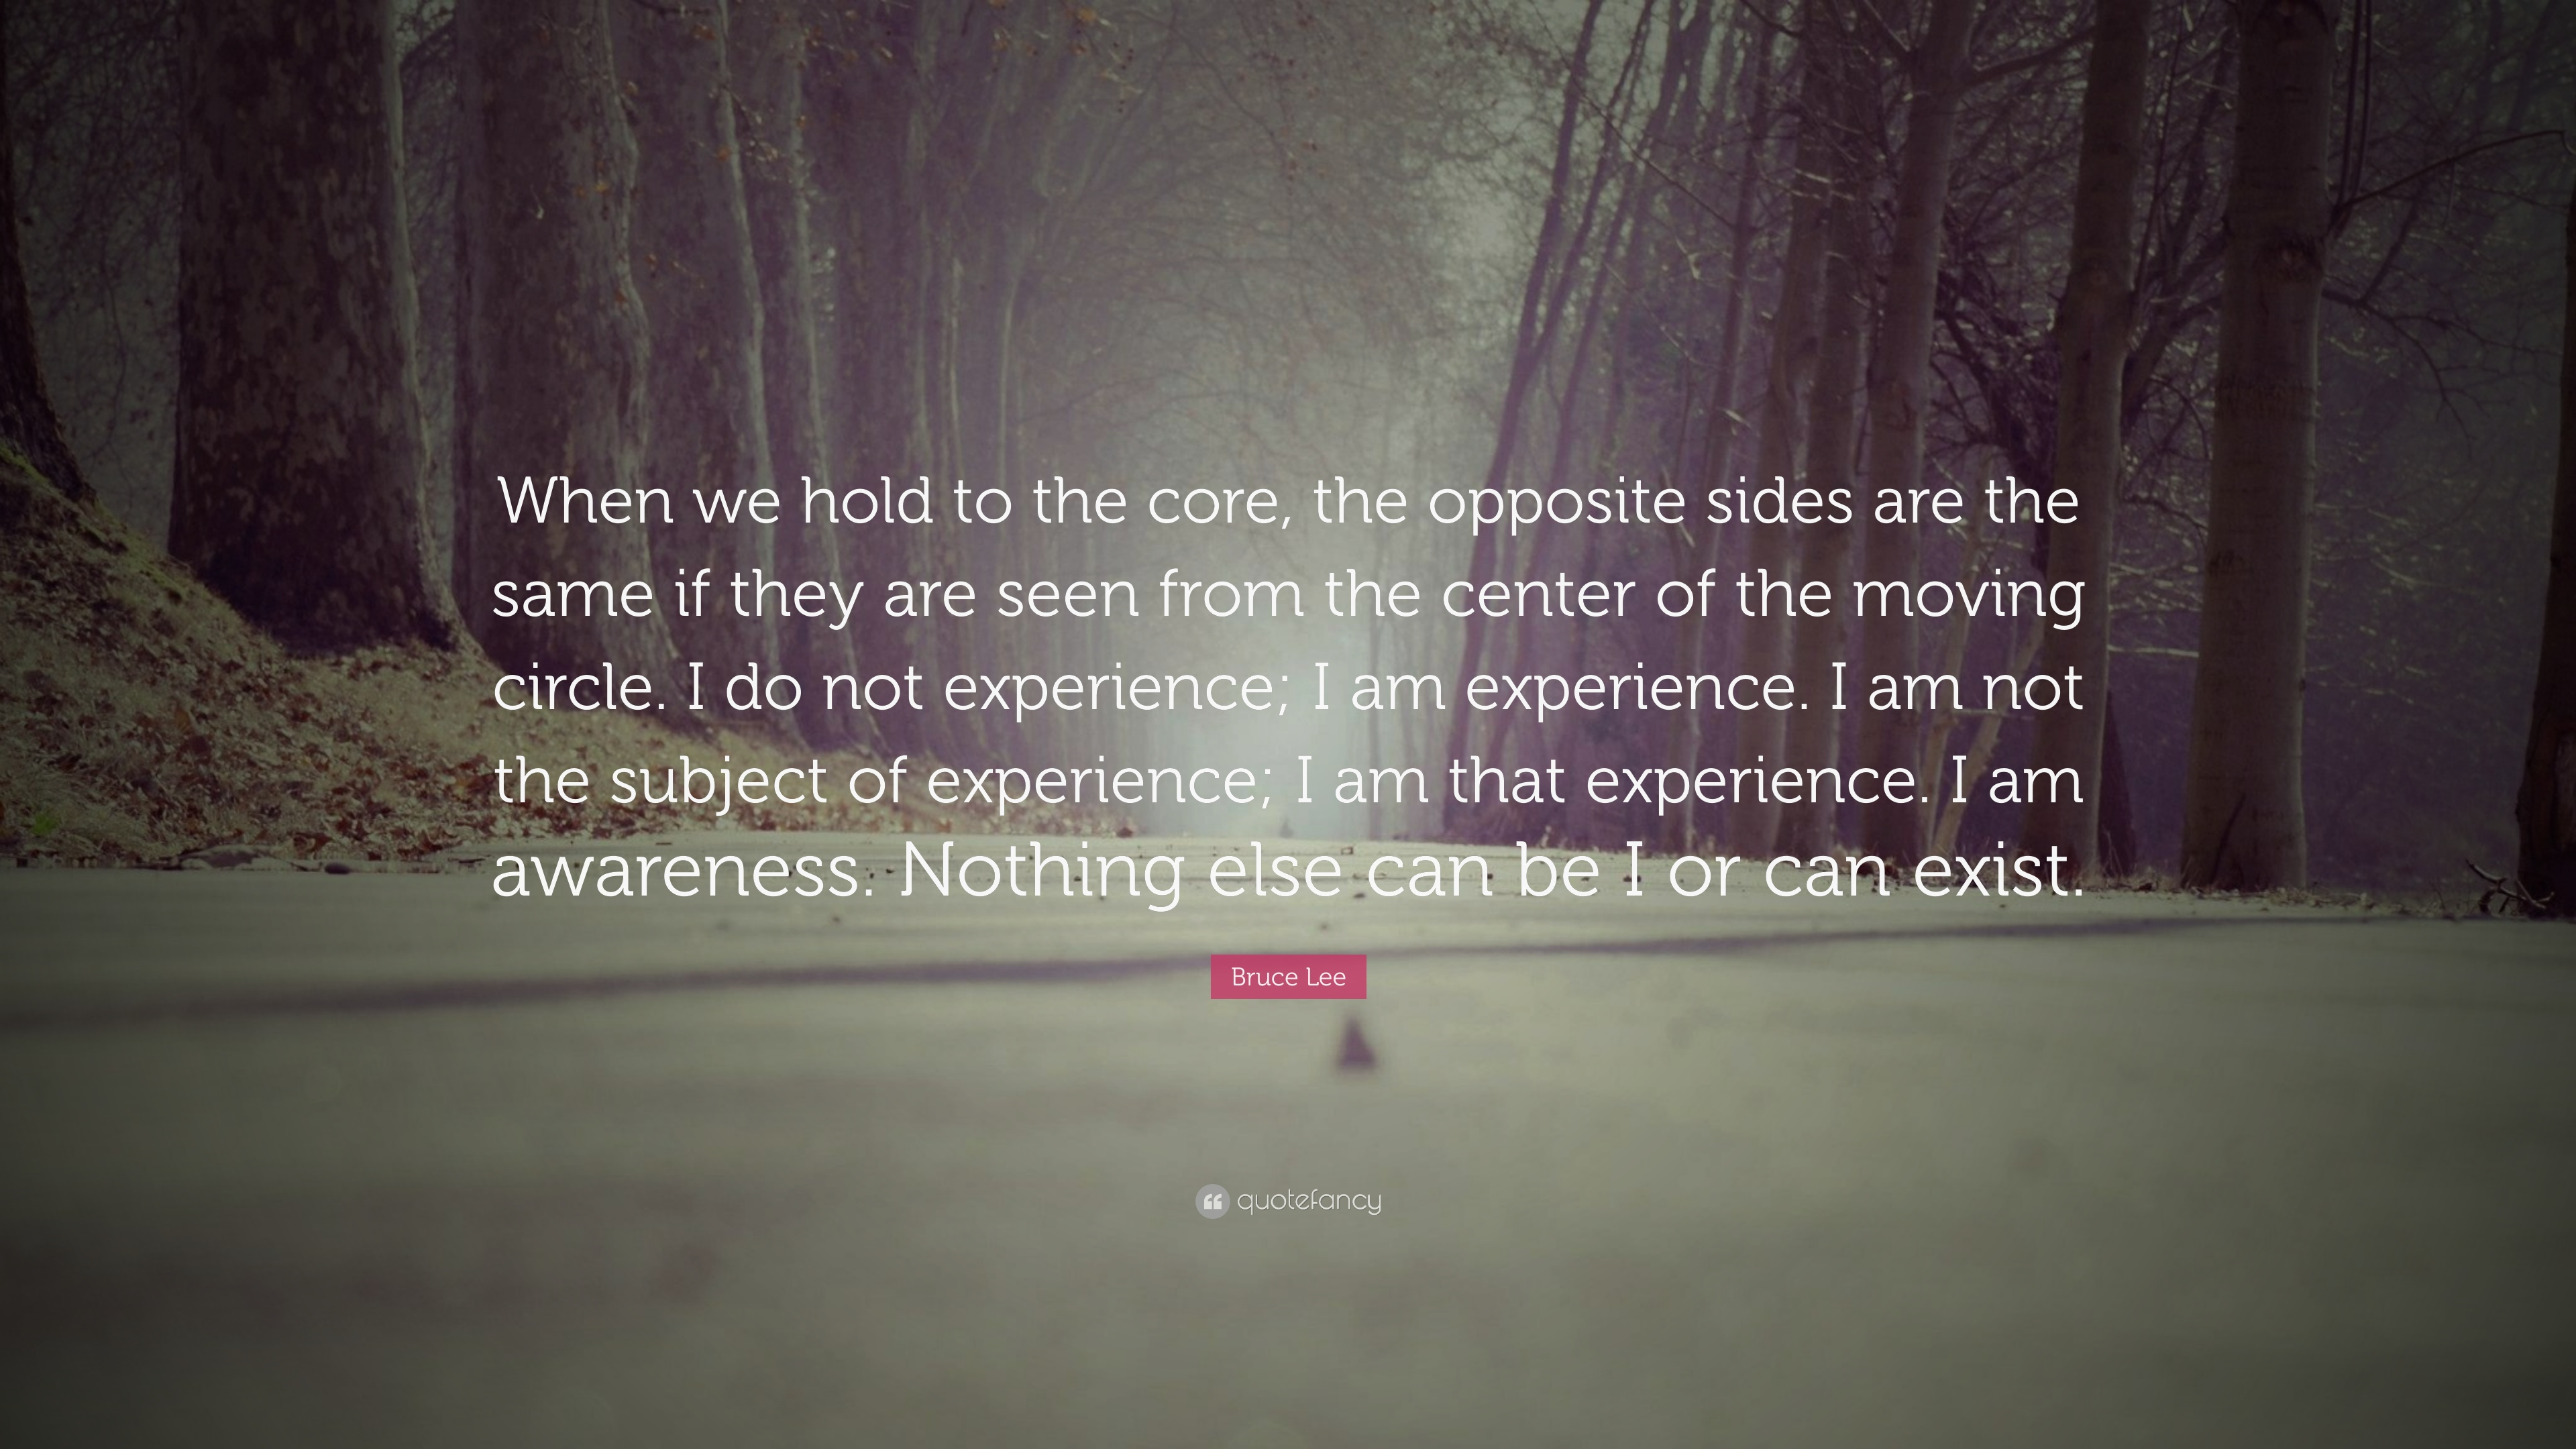 bruce lee quote when we hold to the core the opposite sides are